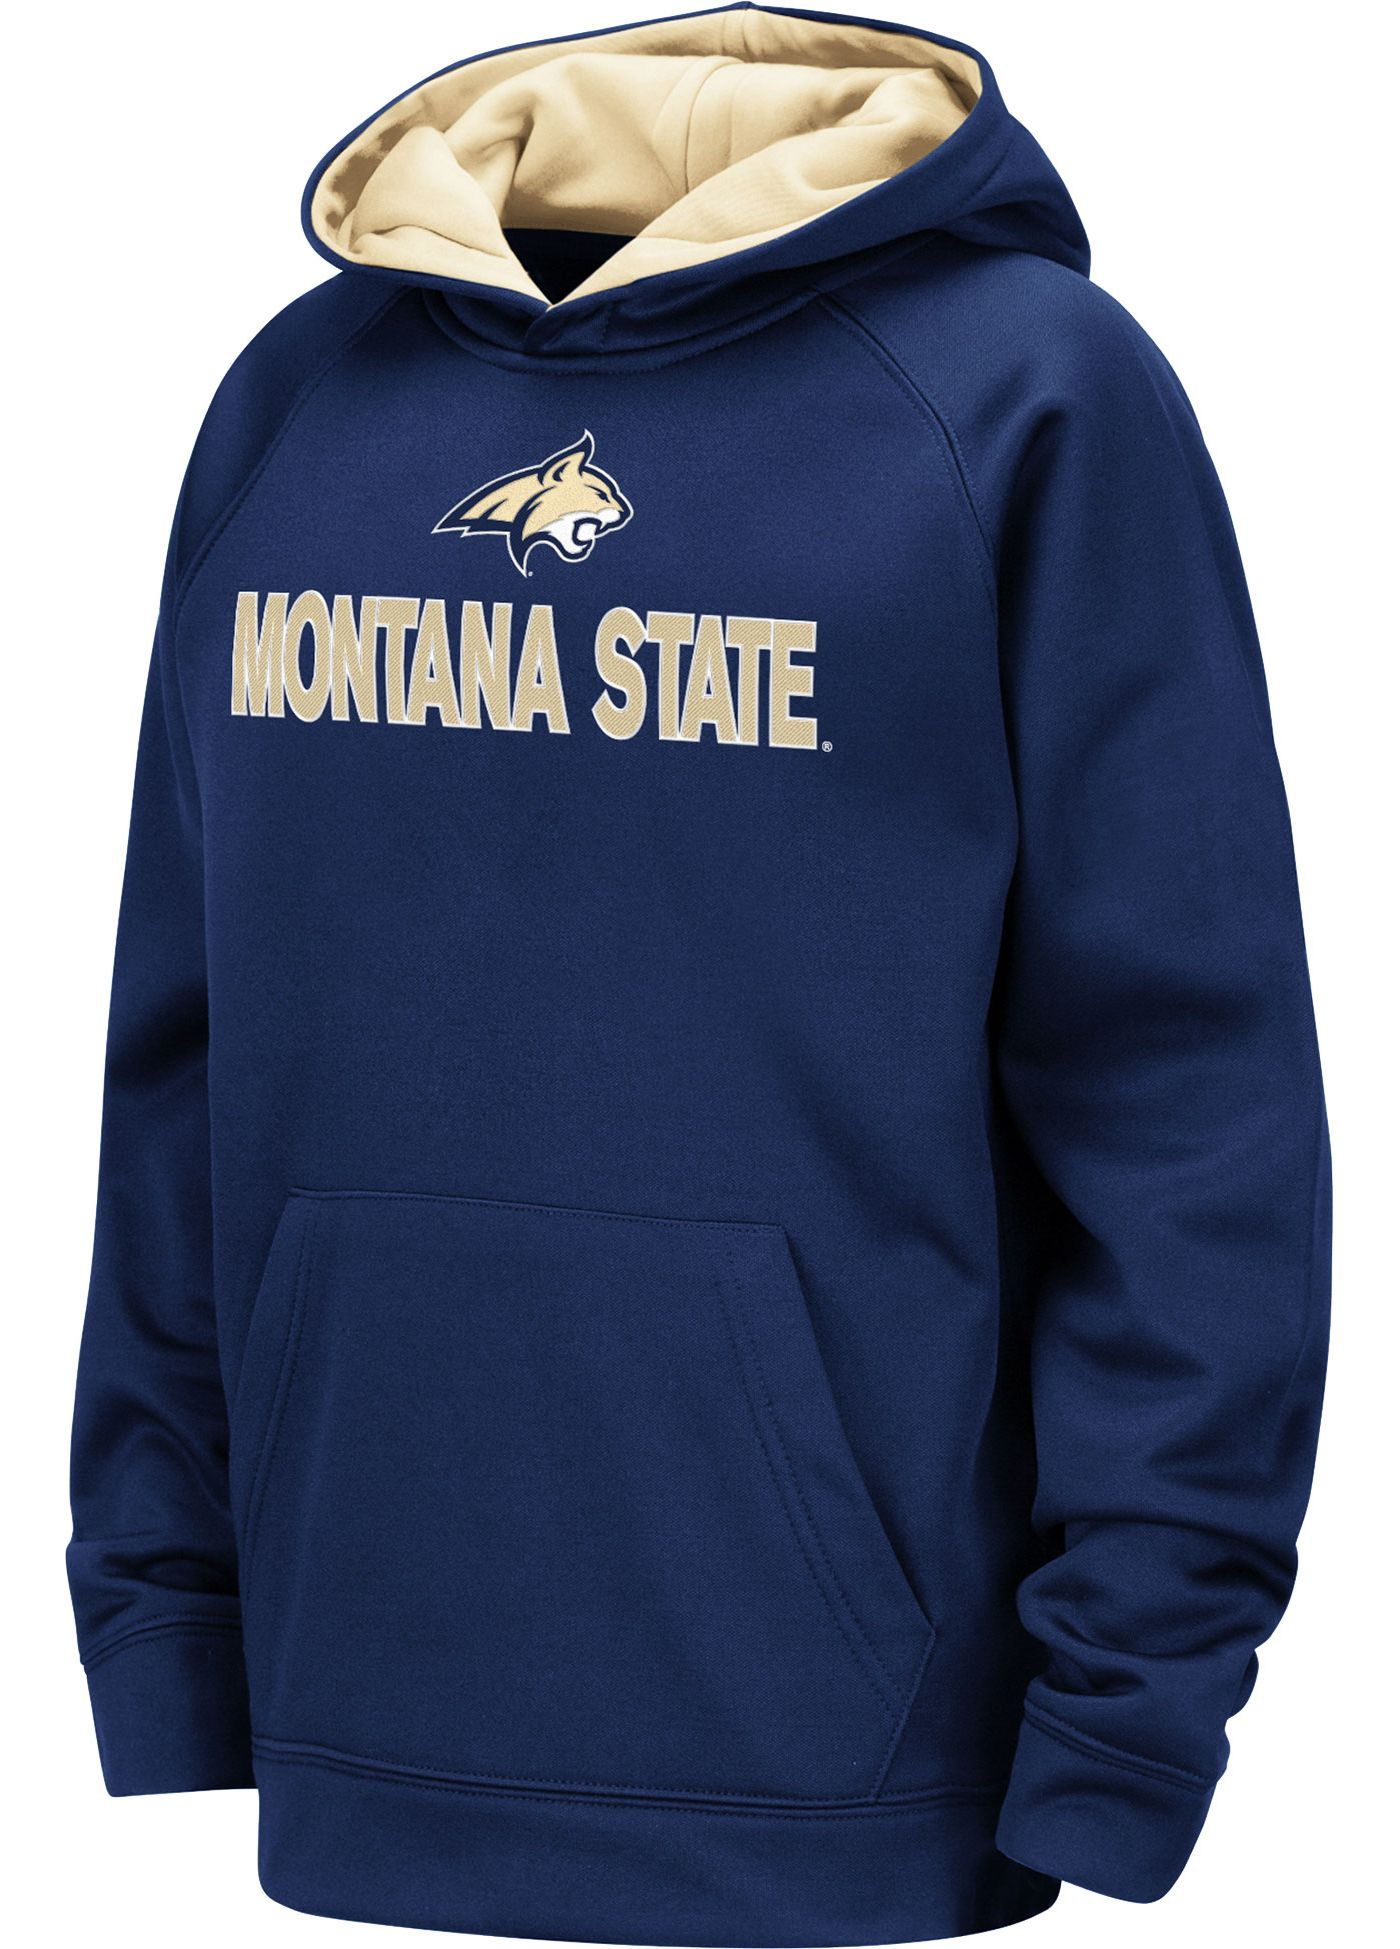 Colosseum Youth Montana State Bobcats Blue Pullover Hoodie